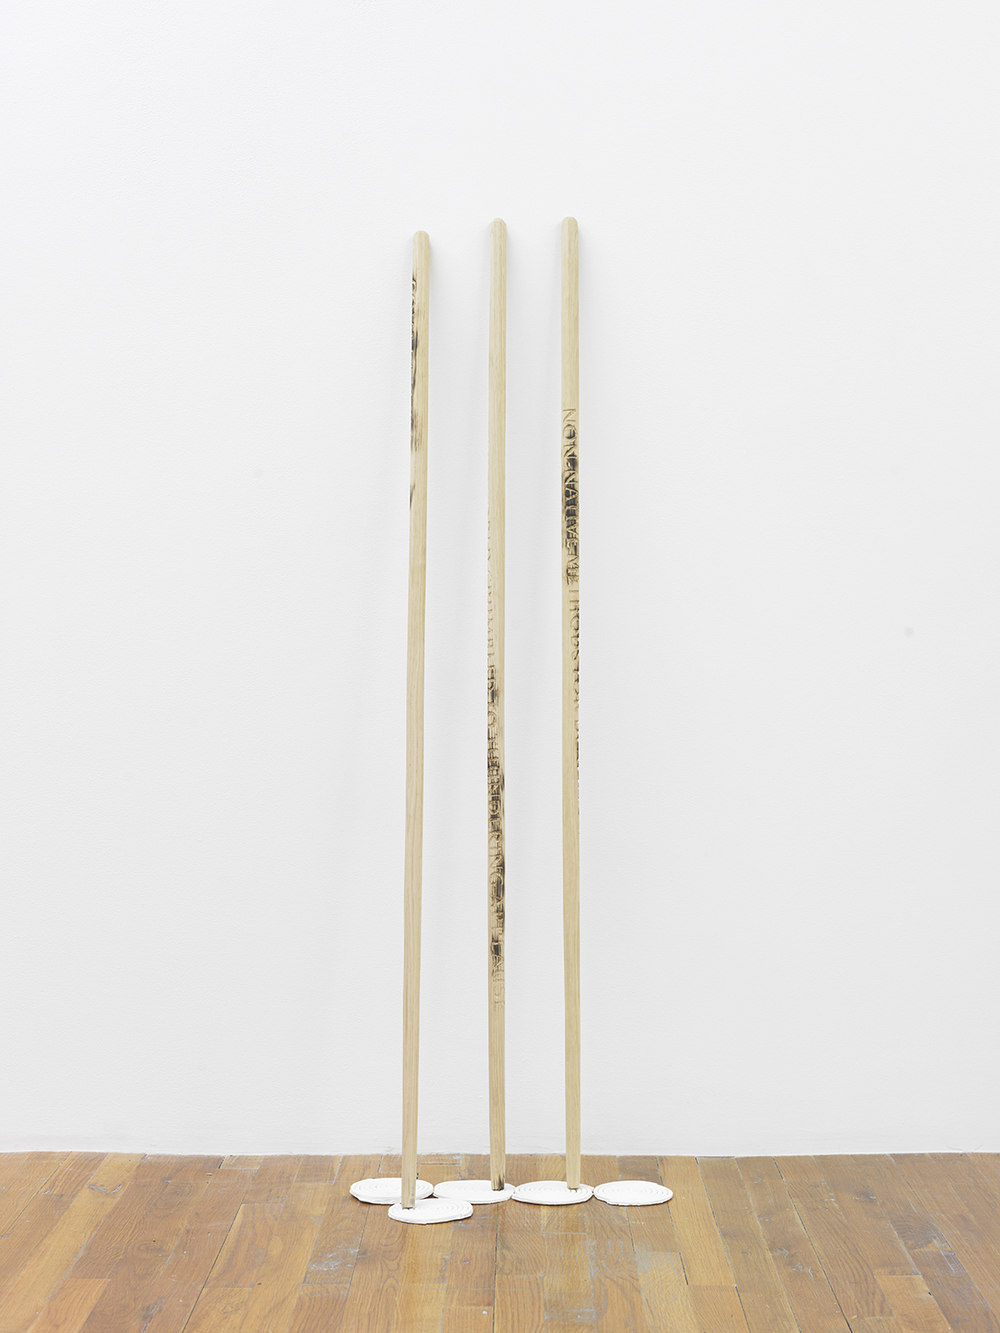 I'll still find my balance with one foot (728 things I regret burning in the fire), 2015 Engraved and seared octagonal walking sticks, gypsum  54 x 18 x 4.5 inches